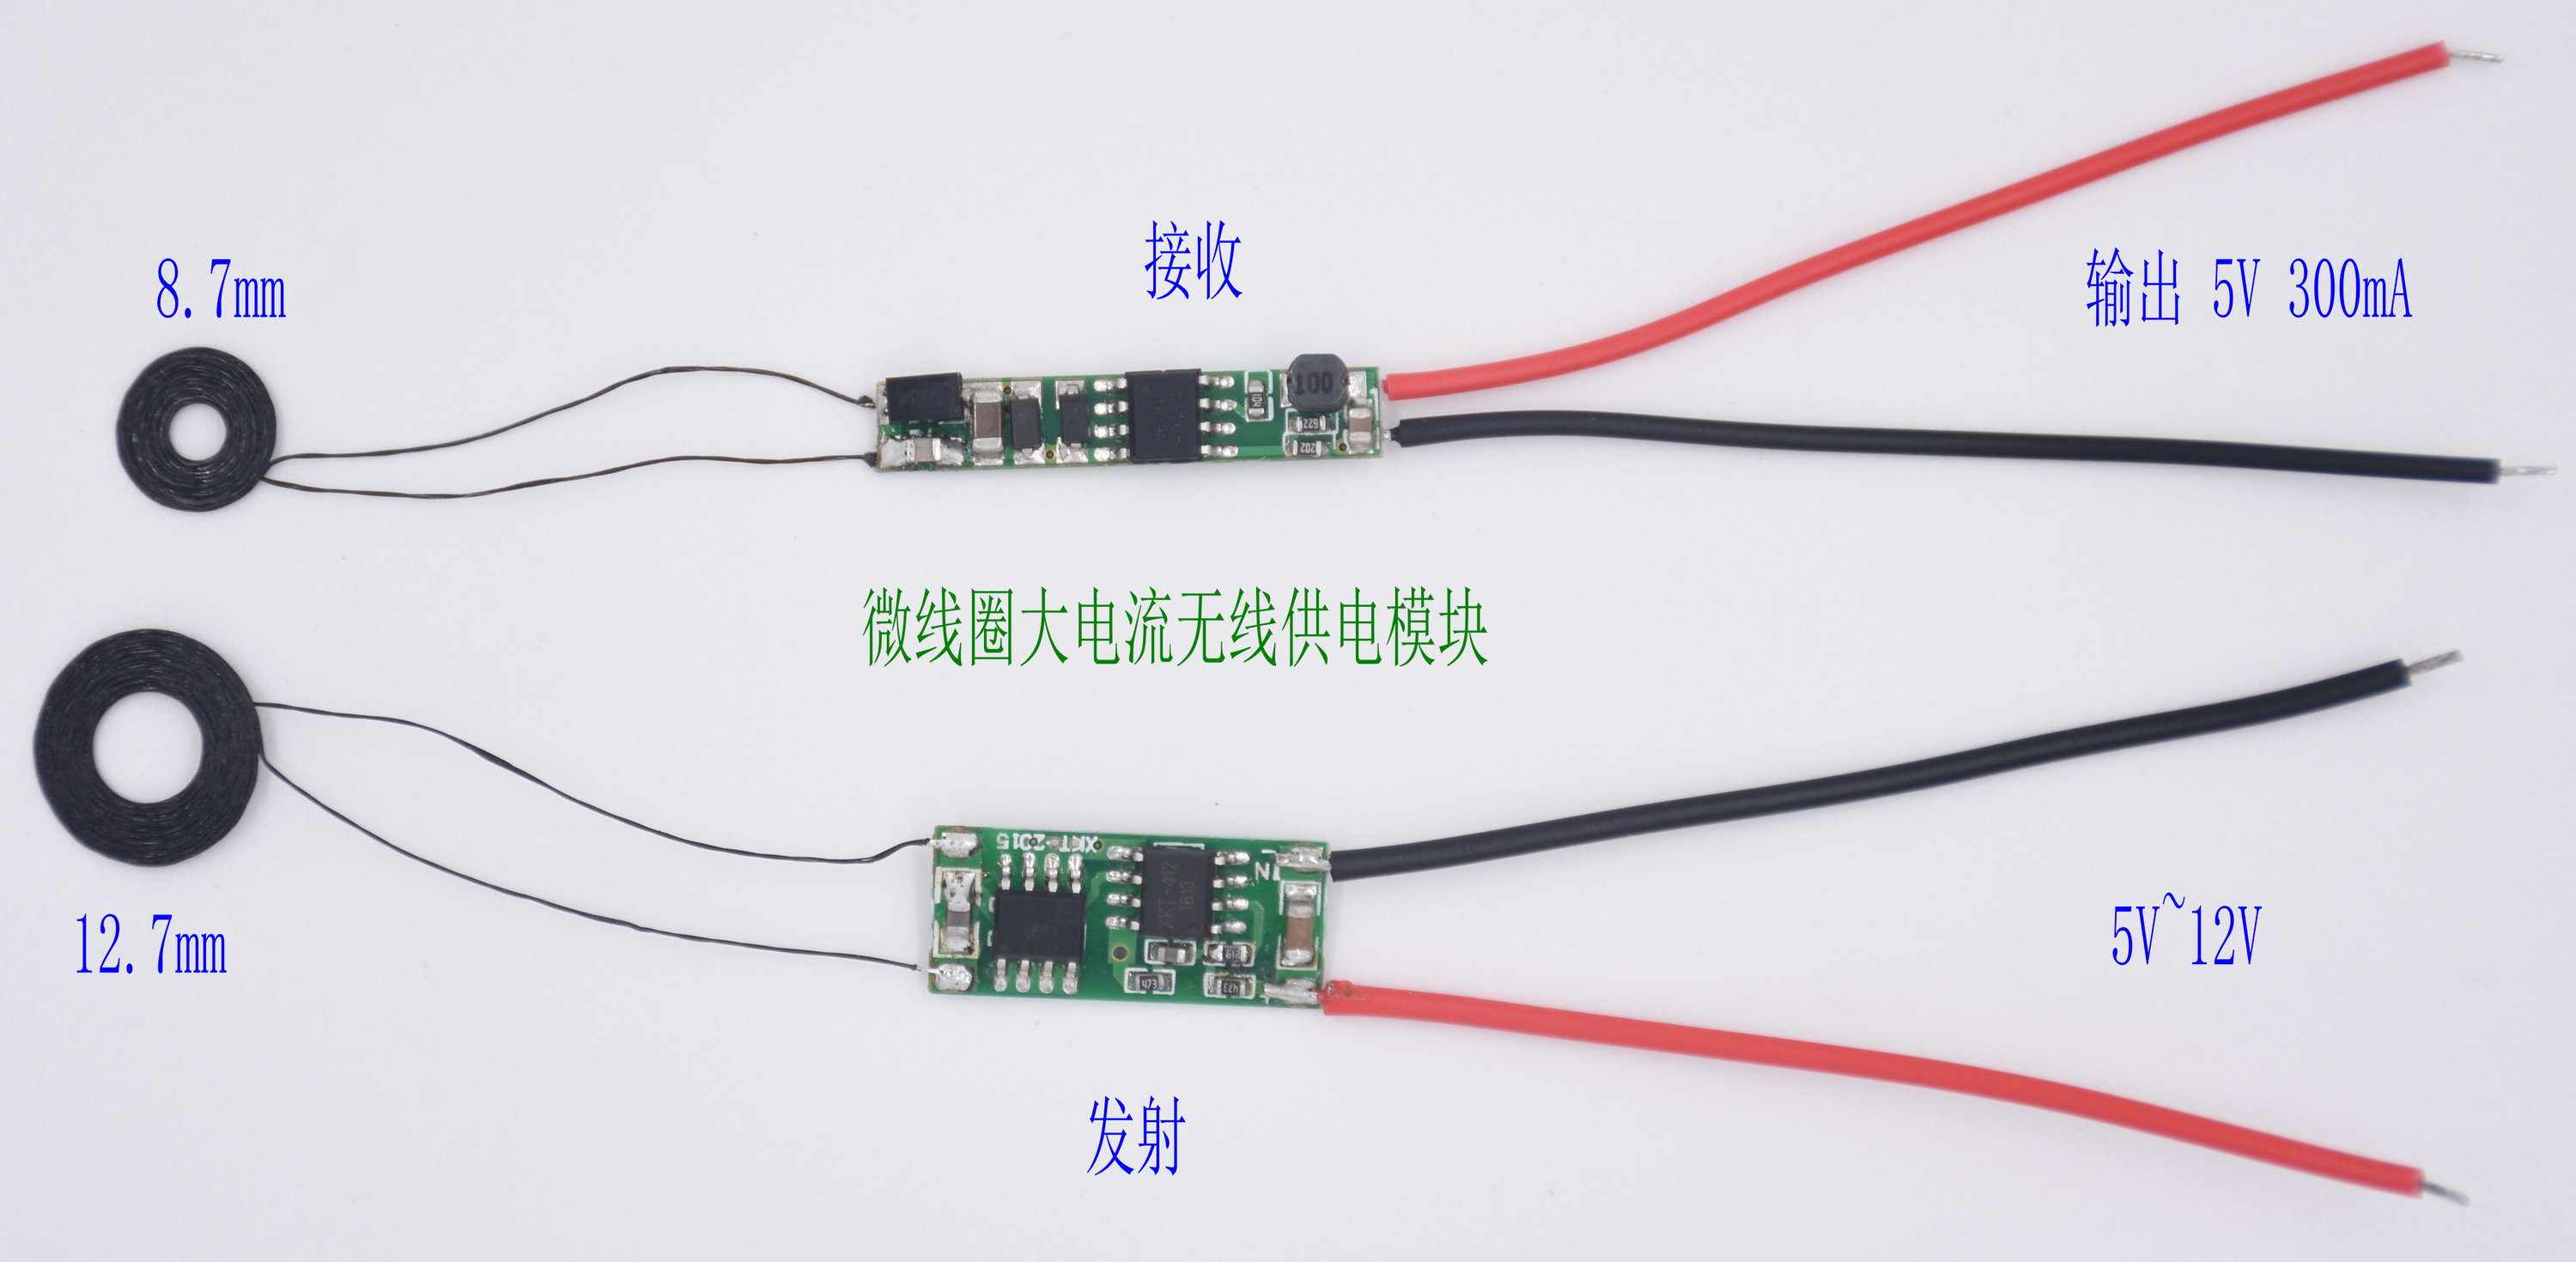 8.7mm micro coil 300mA high current wireless charging power supply module 8 7mm micro coil 300ma high current wireless charging power supply module